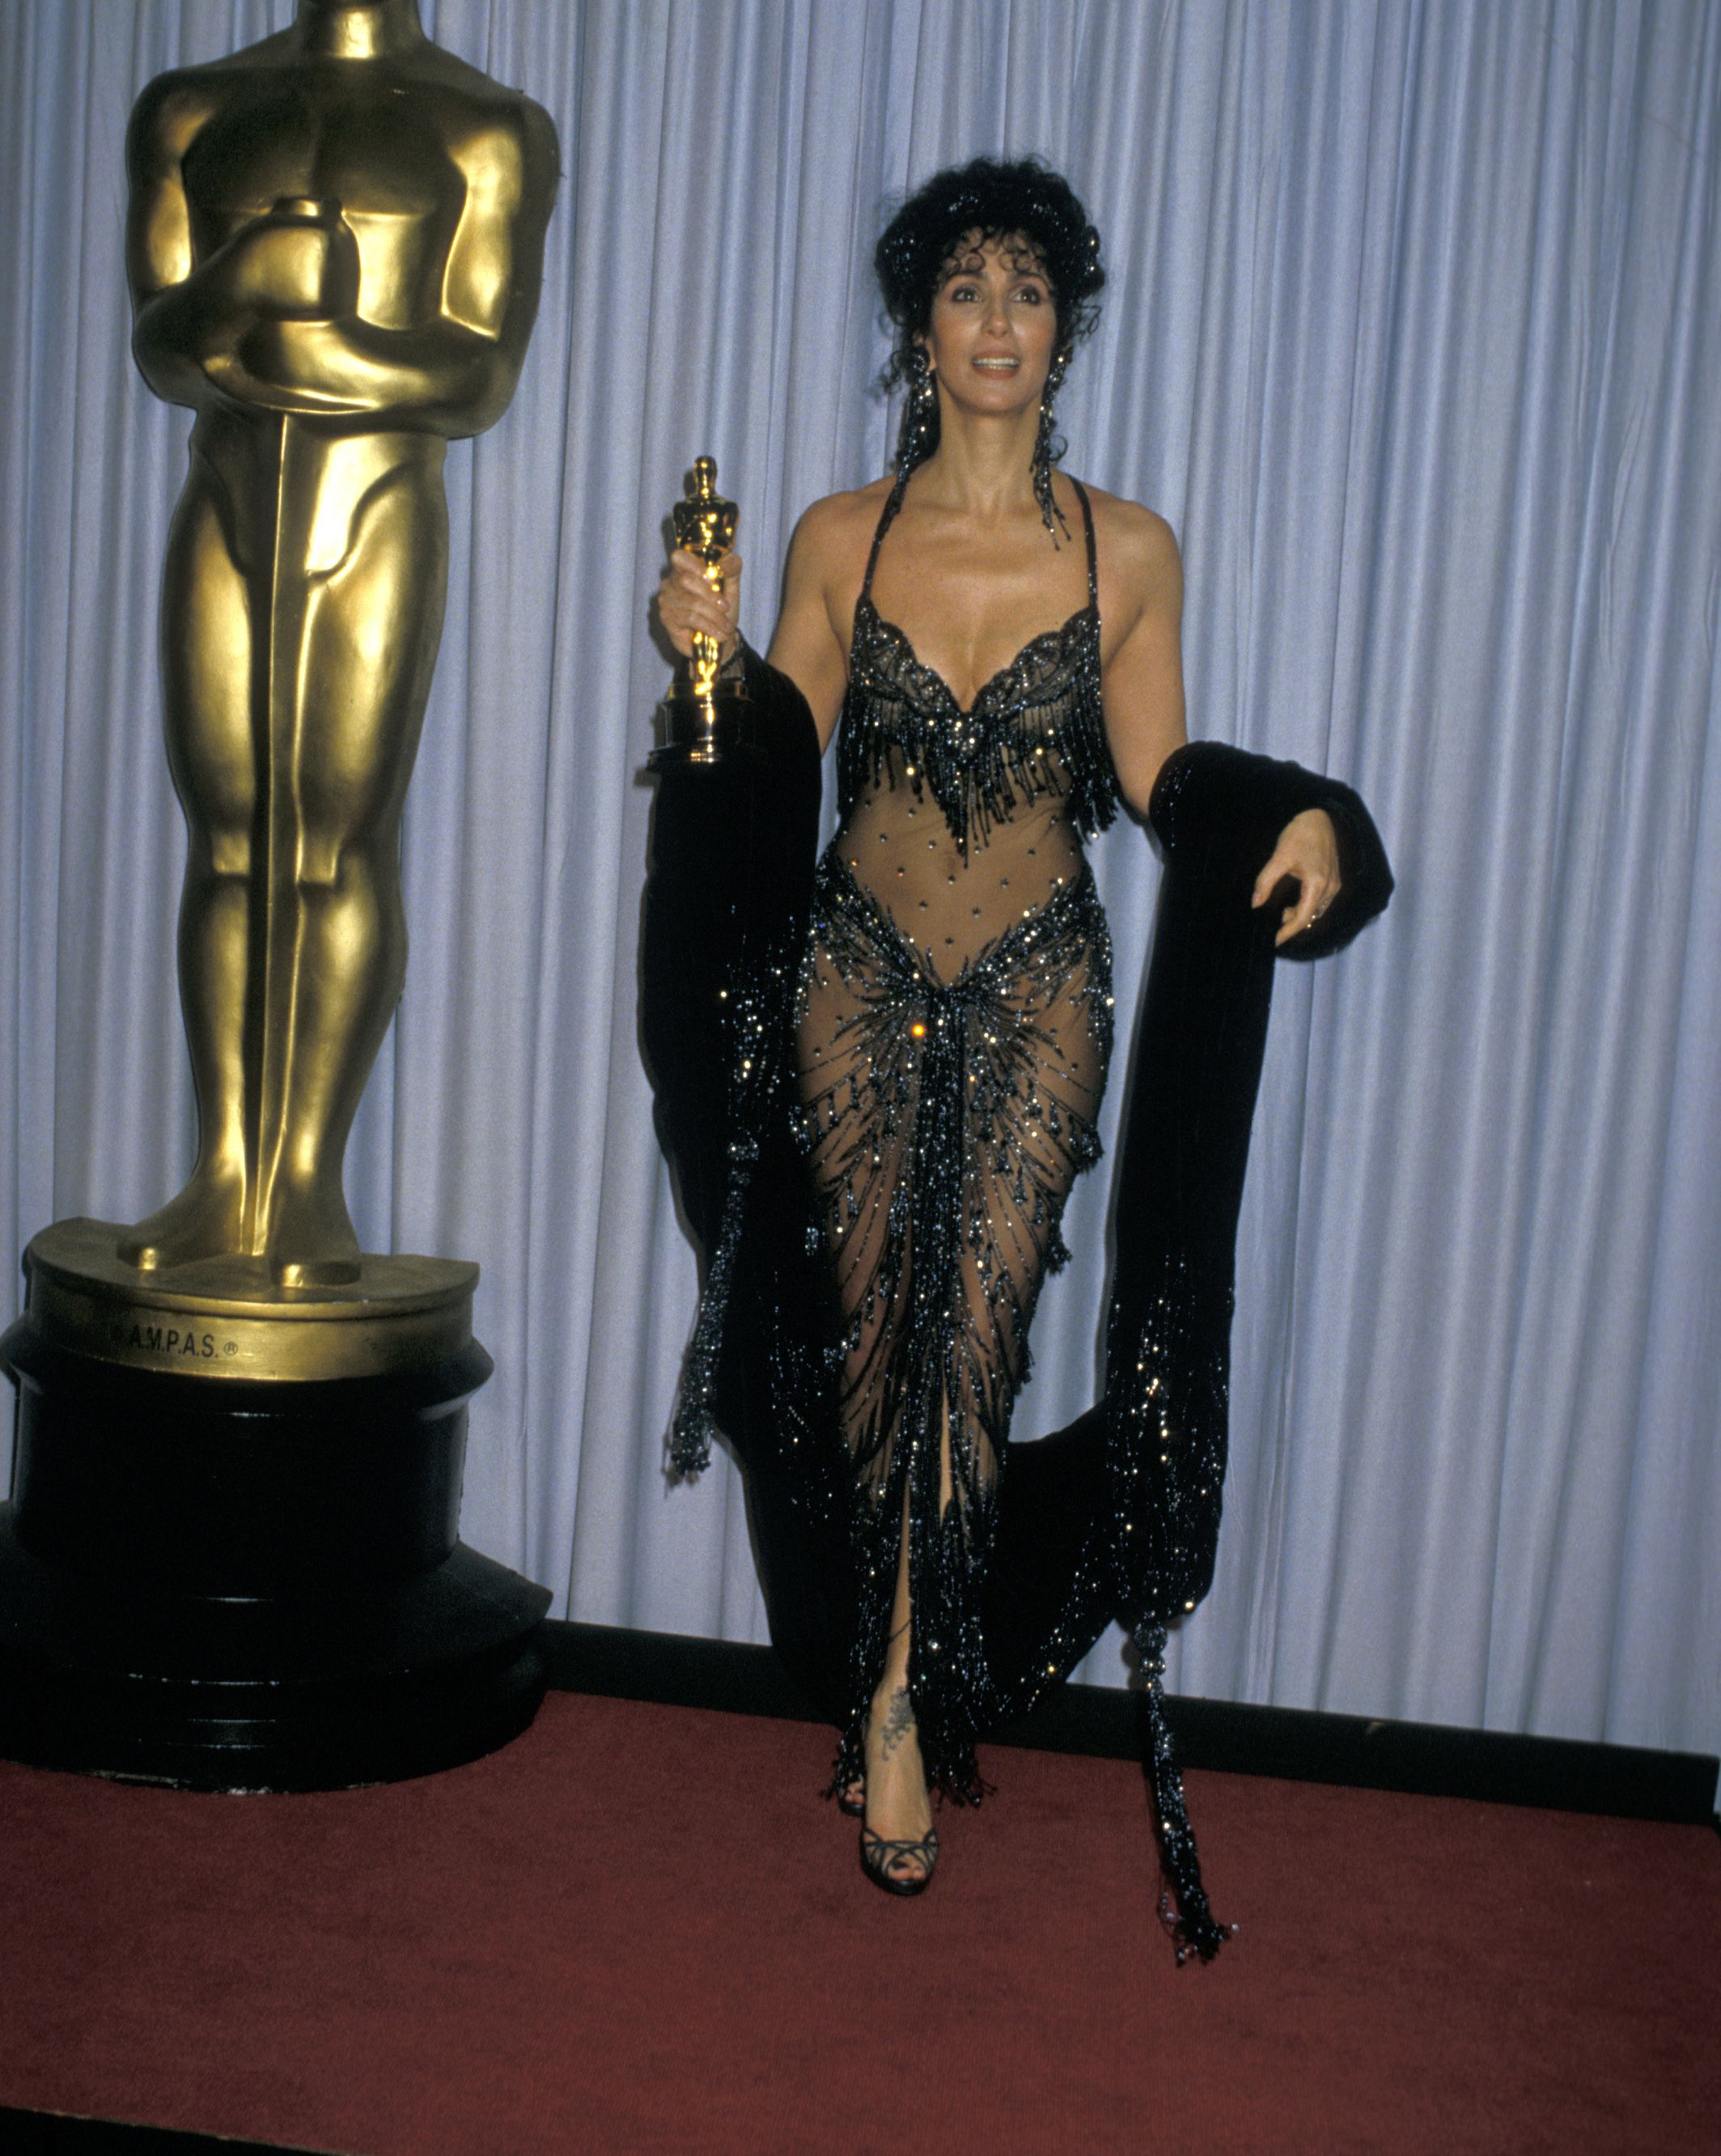 Cher holds her Oscar for best actress in the film Moonstruck .